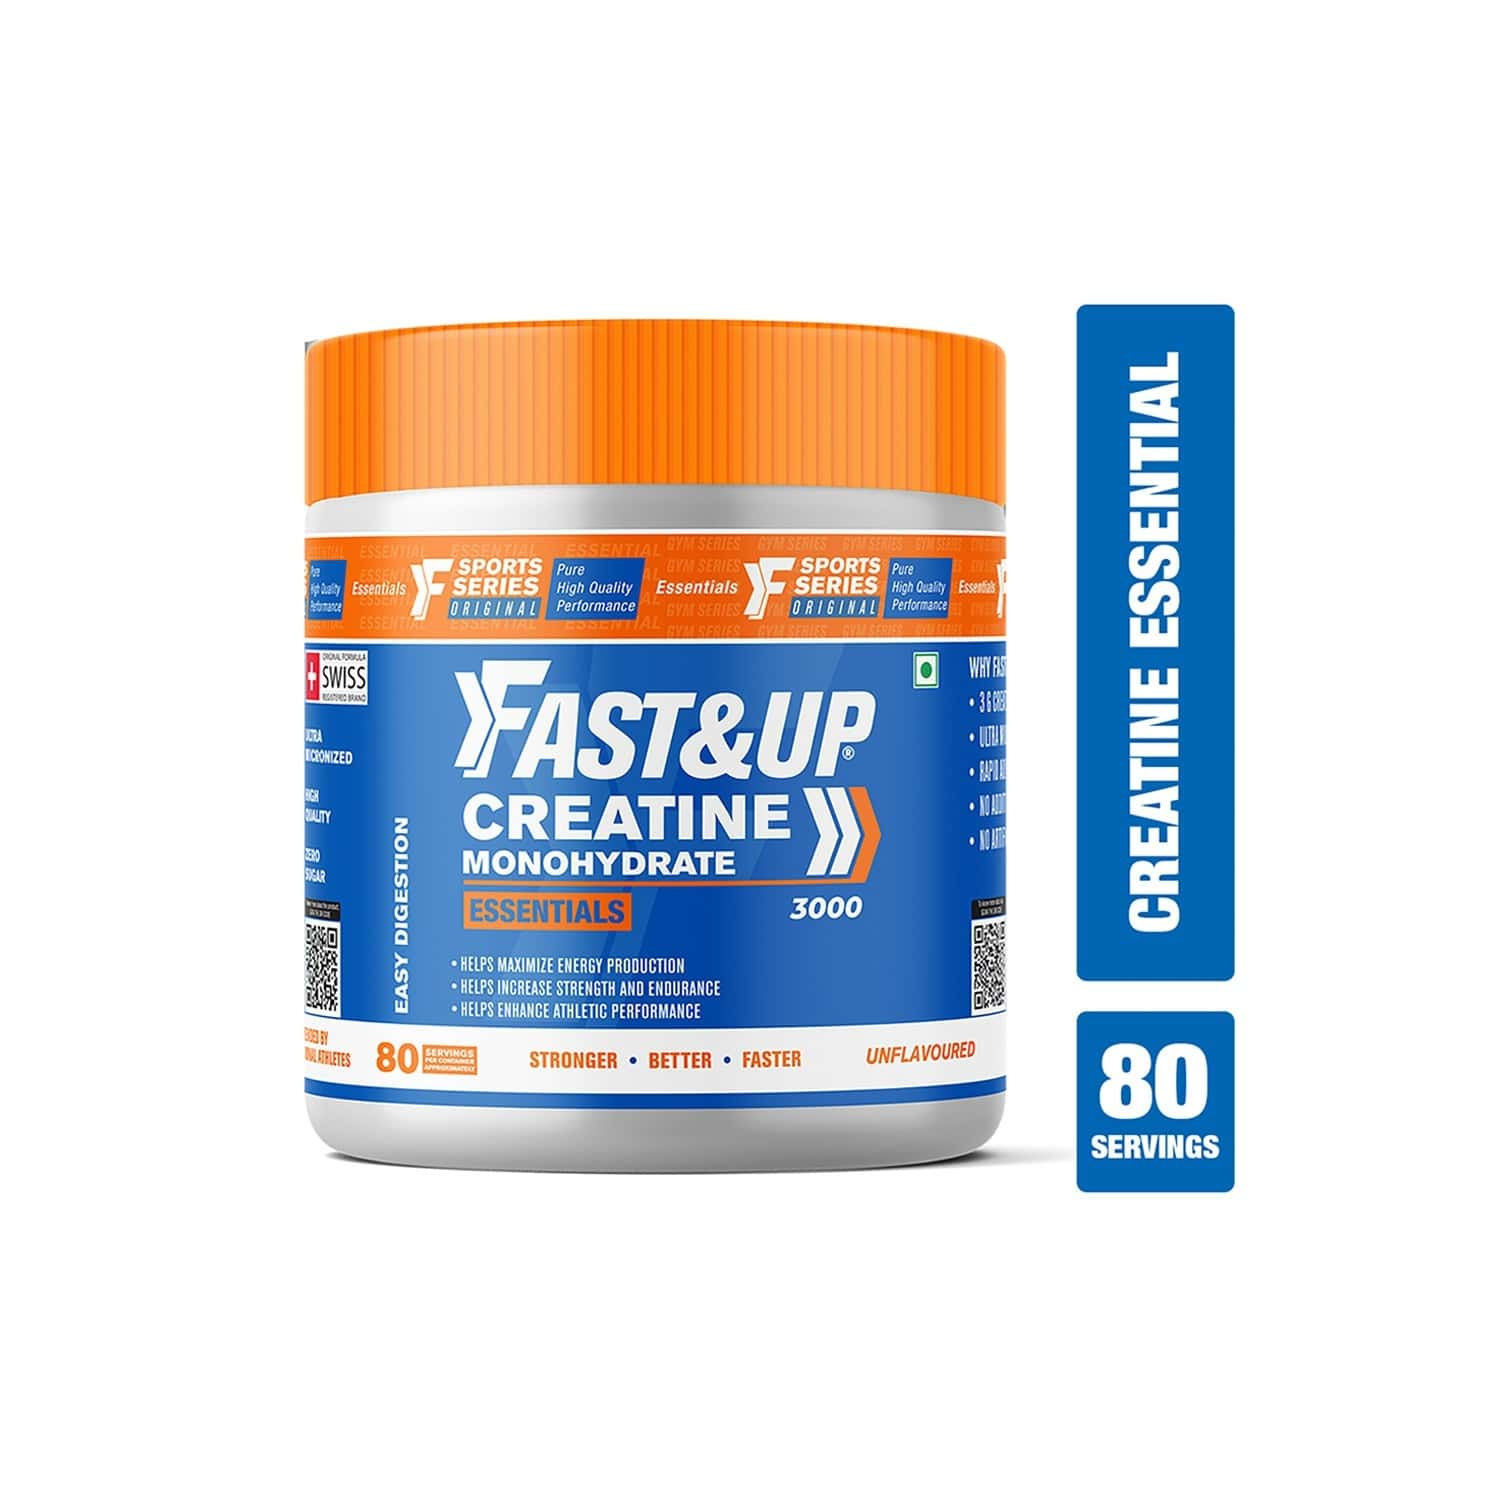 Fast & Up Creatine Monohydrate - Creatine Essentials, Ultra Micronized Faster Absorption, Strength & Endurance, Better Athletic Performance Zero Sugar Unflavoured 80 Servings - 250g